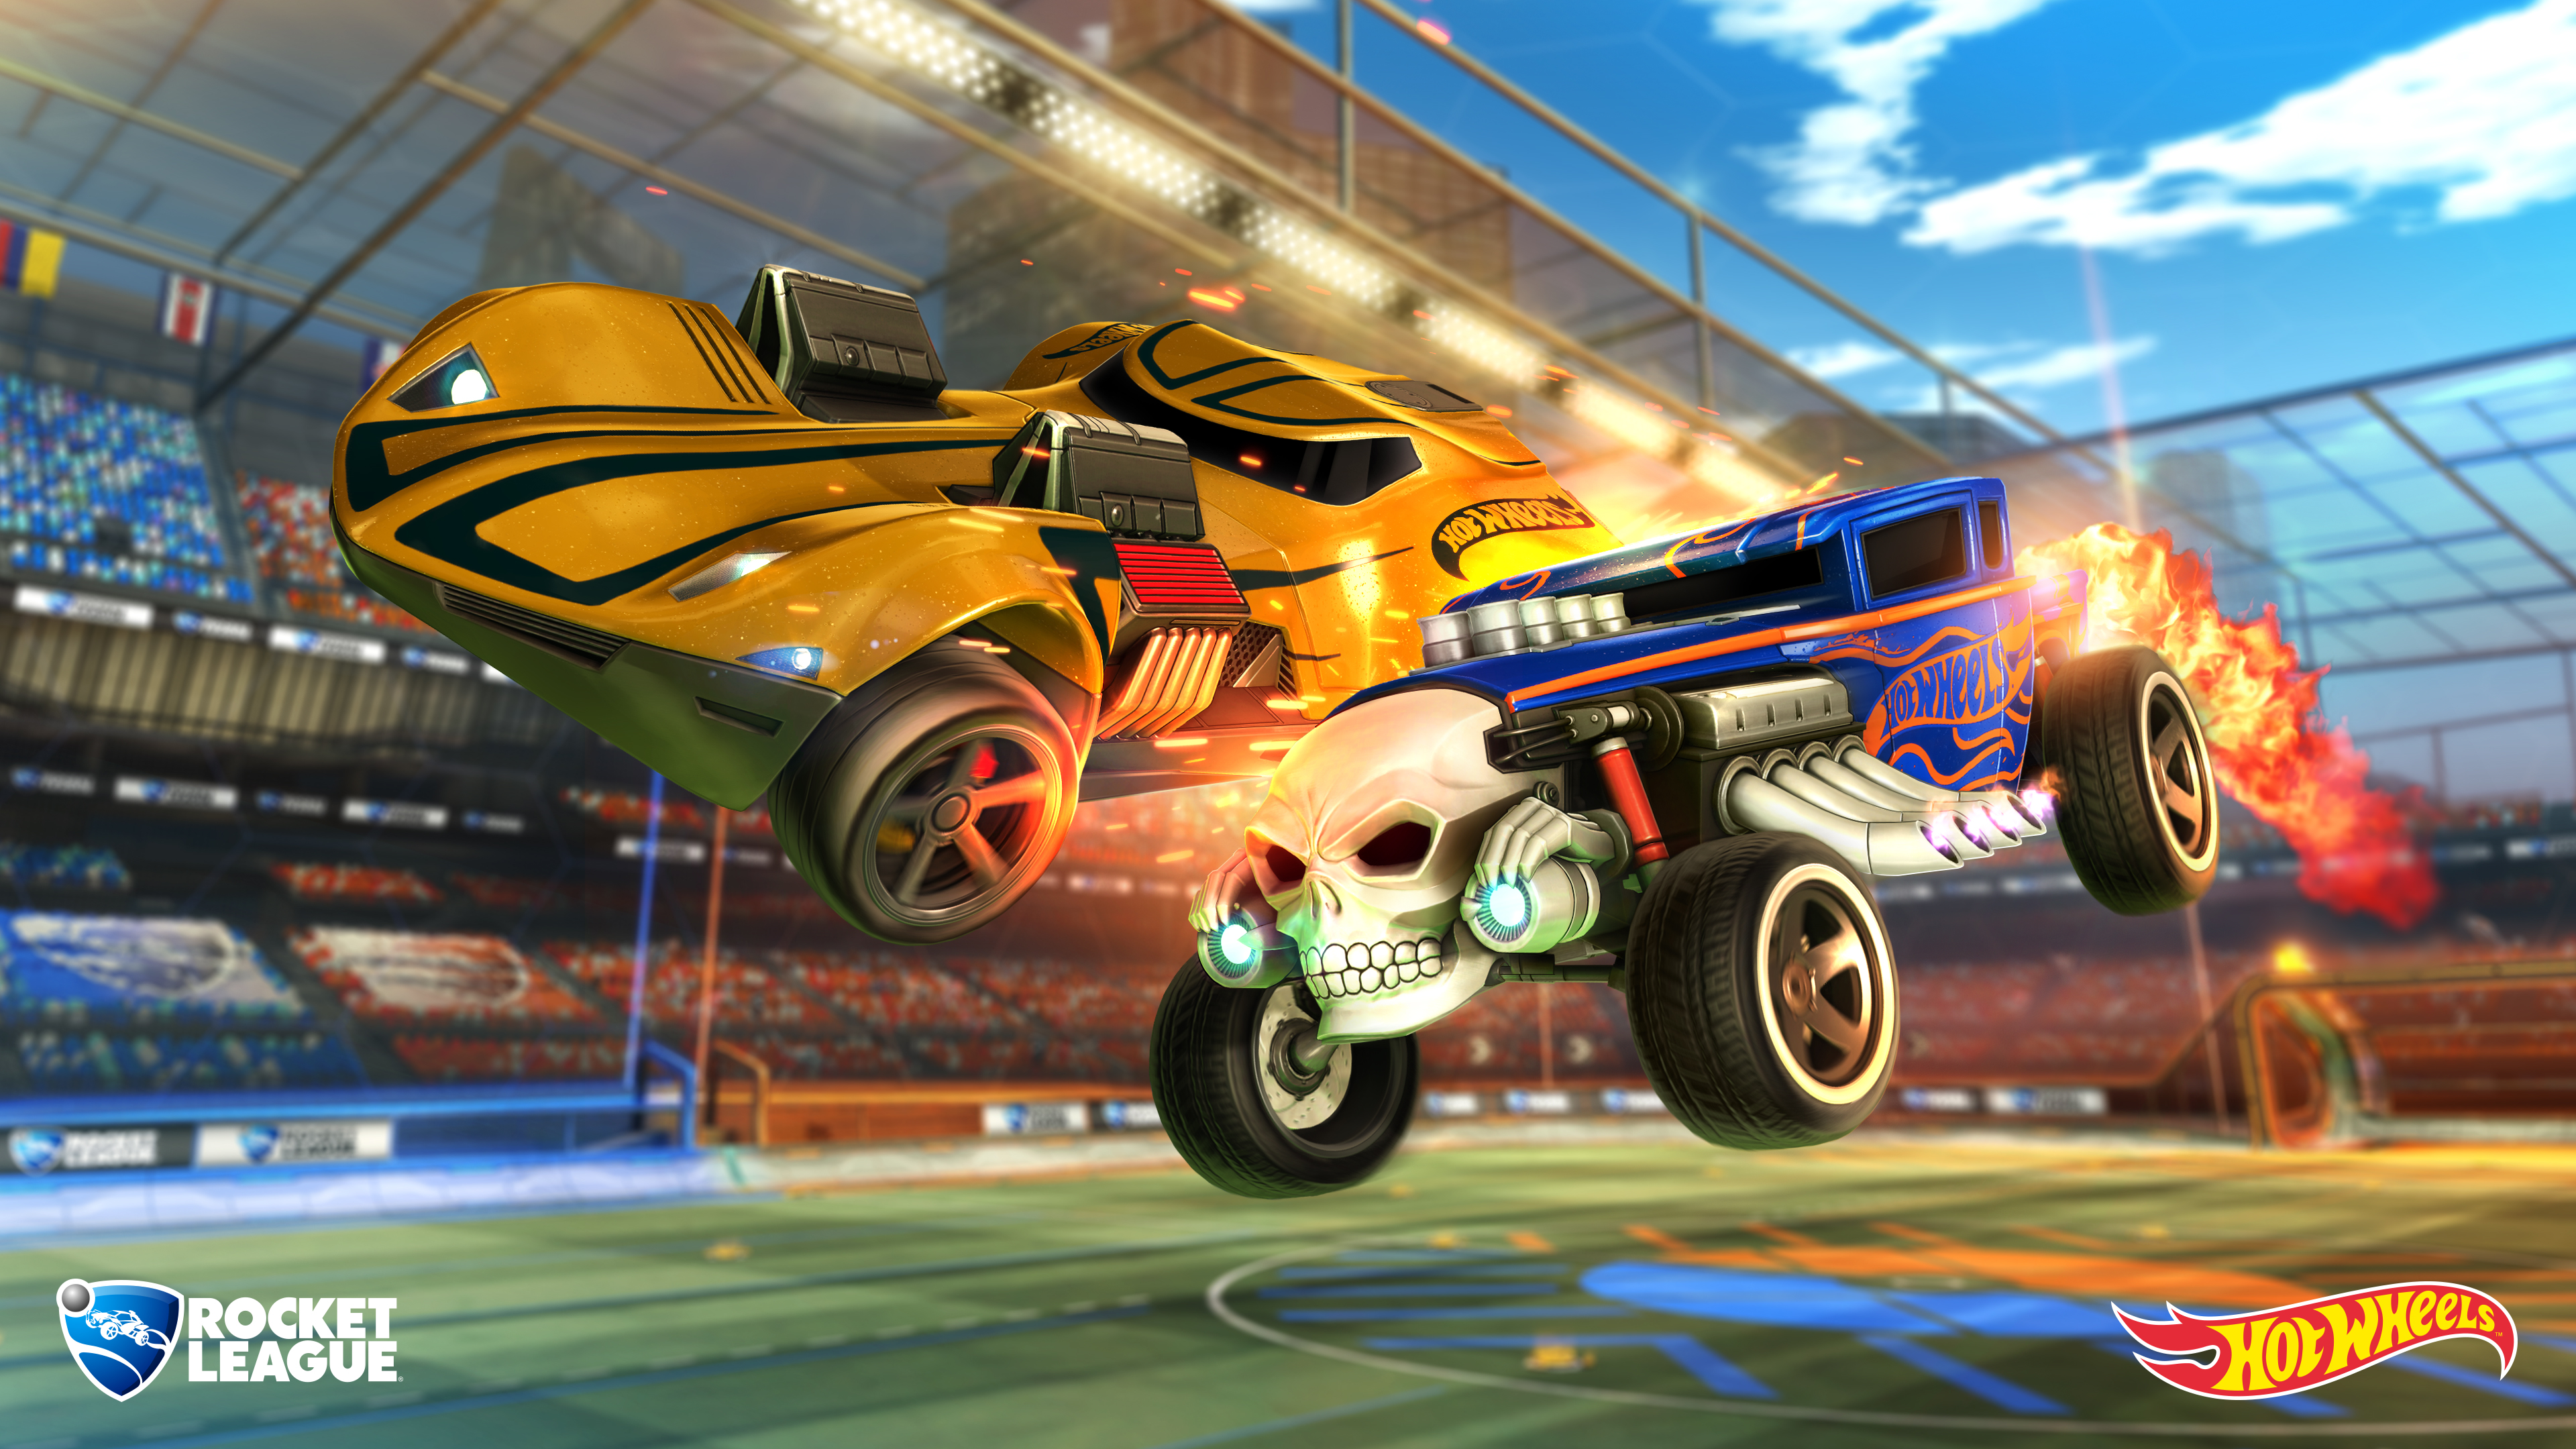 Hot Wheels Partners With Psyonix To Bring Rocket League to